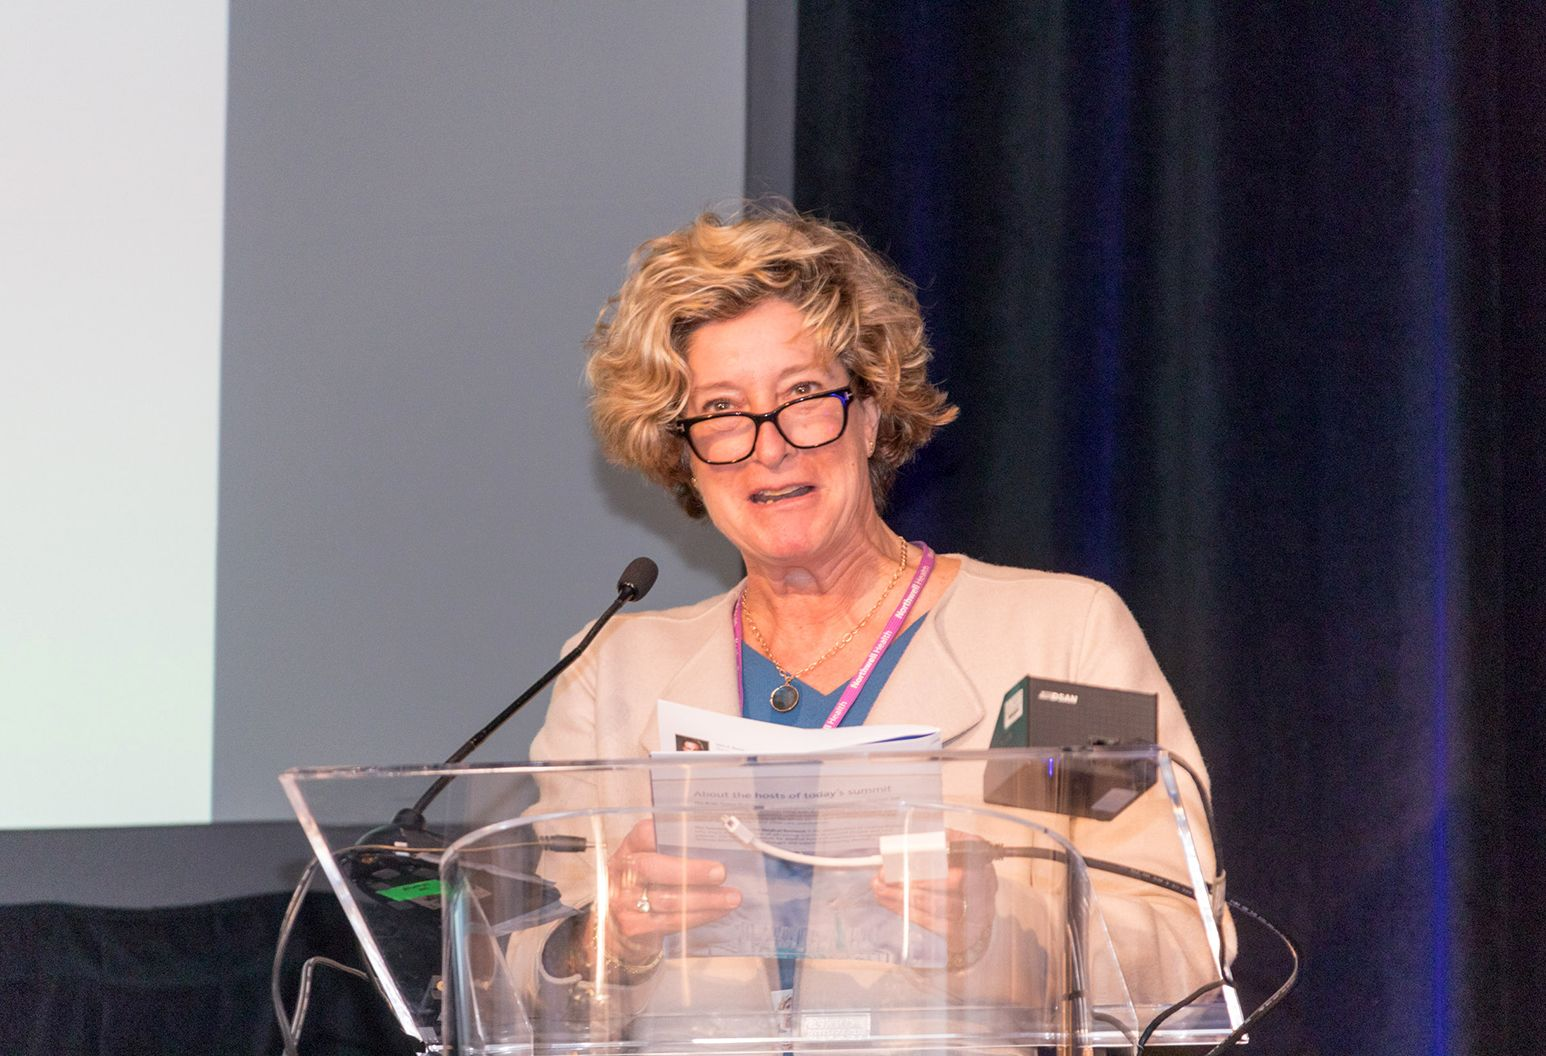 Middle aged woman stands behind a podium on stage at a conference